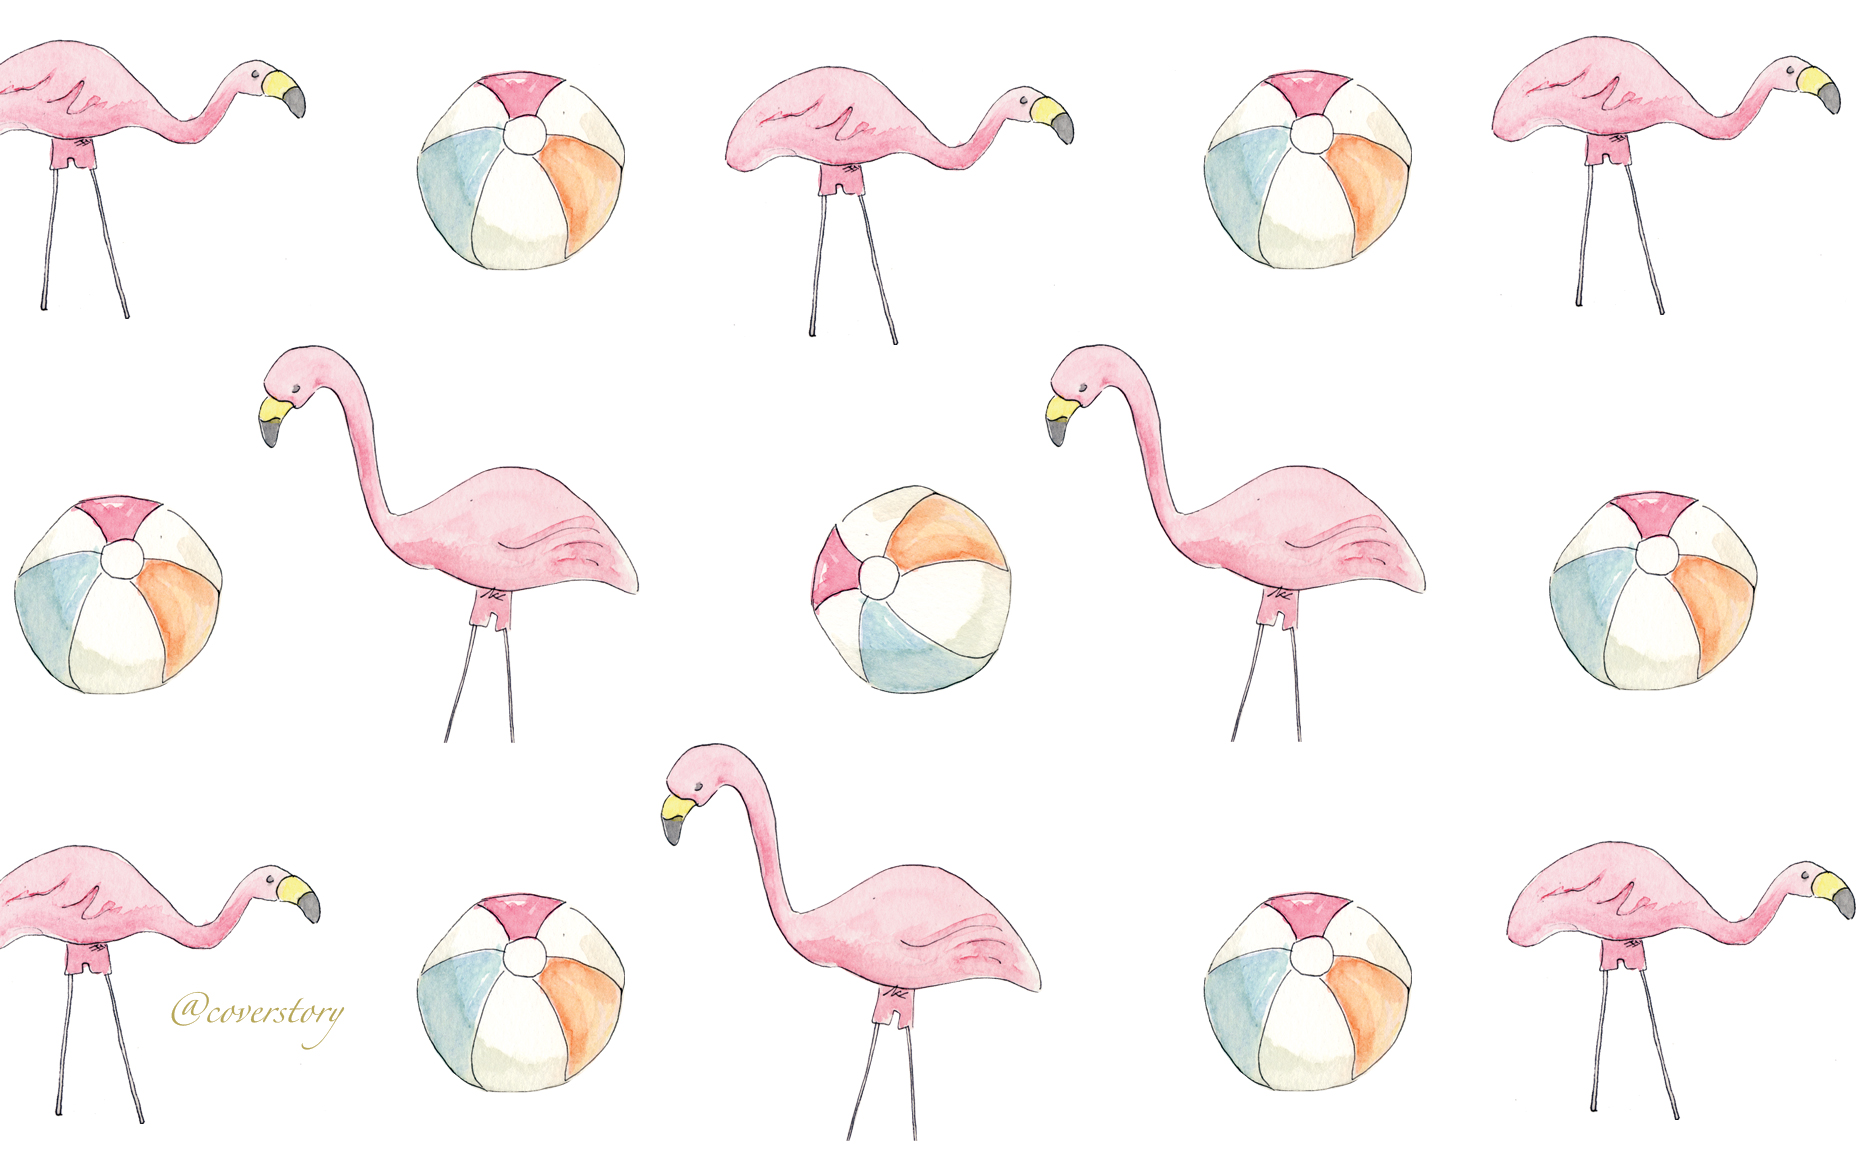 The flamingos are wearing shorts!